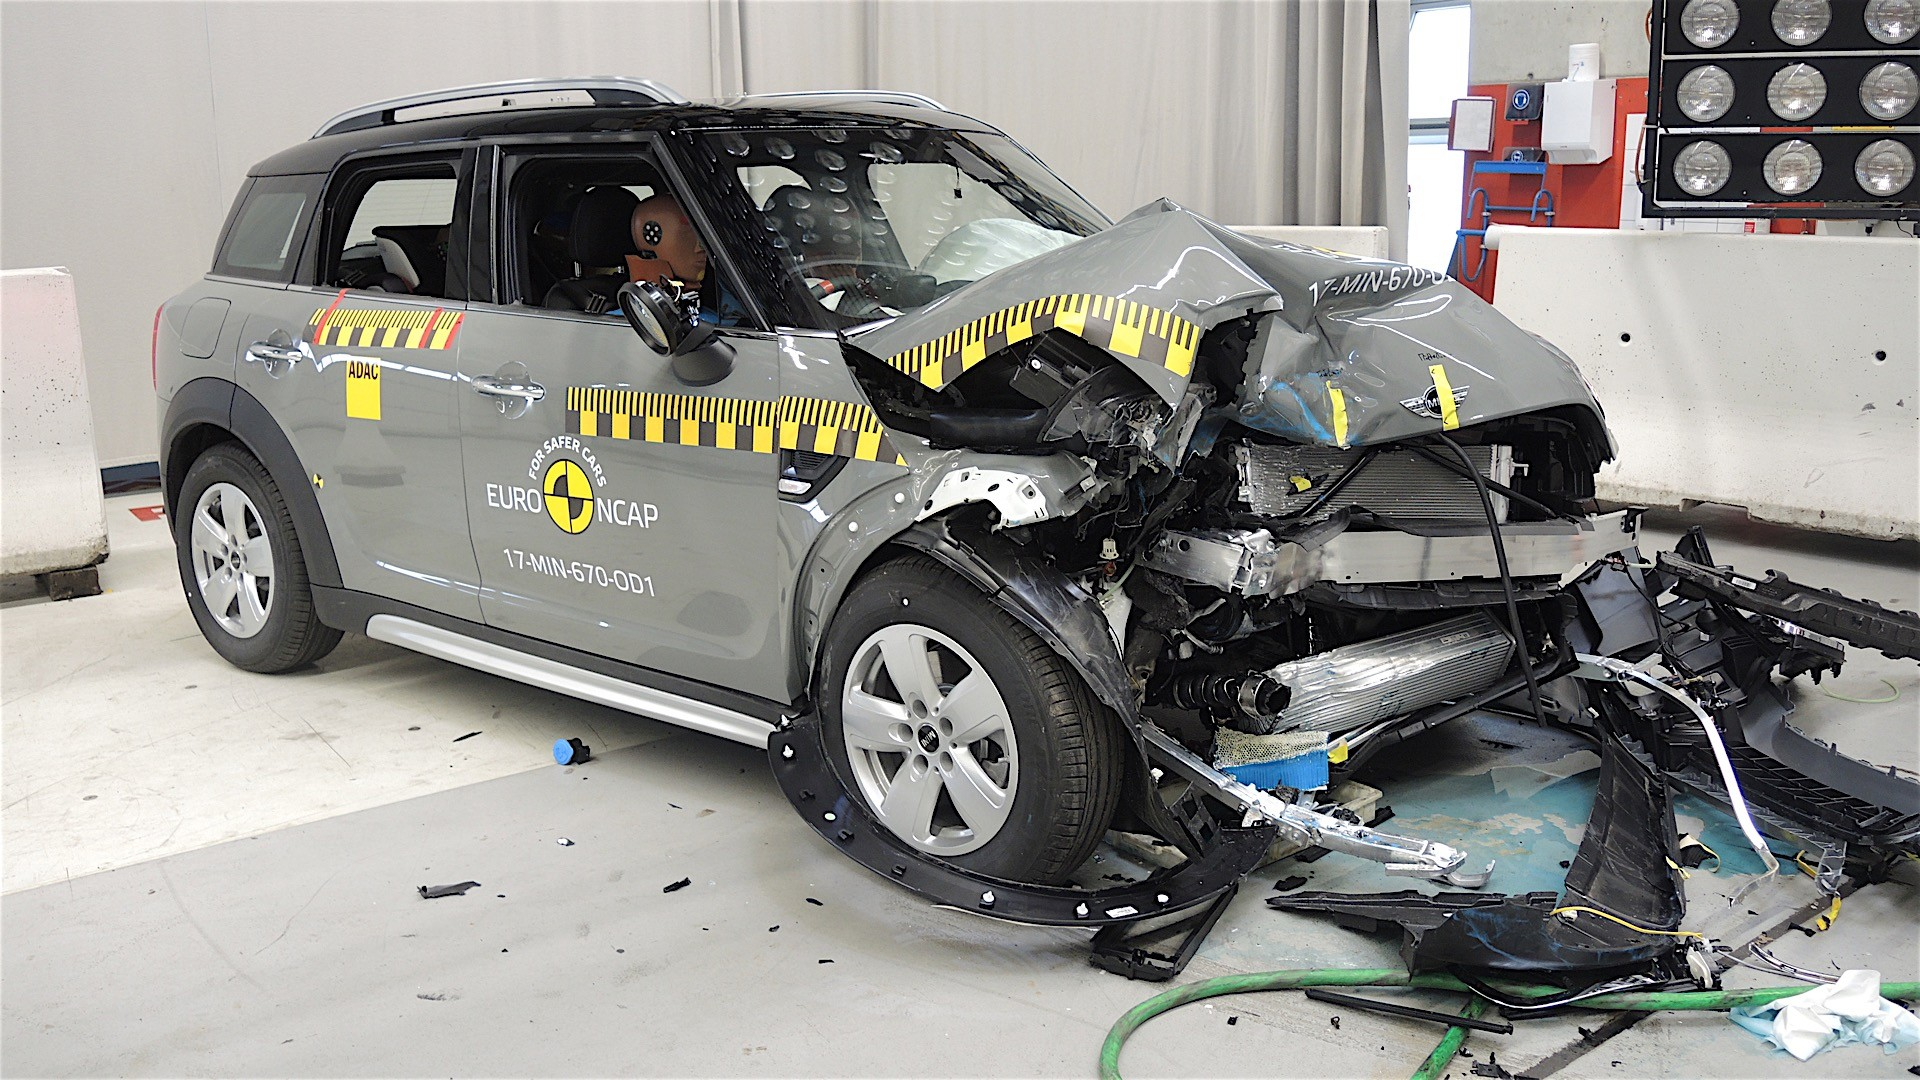 Euro NCAP crash tests may 2017 (26)